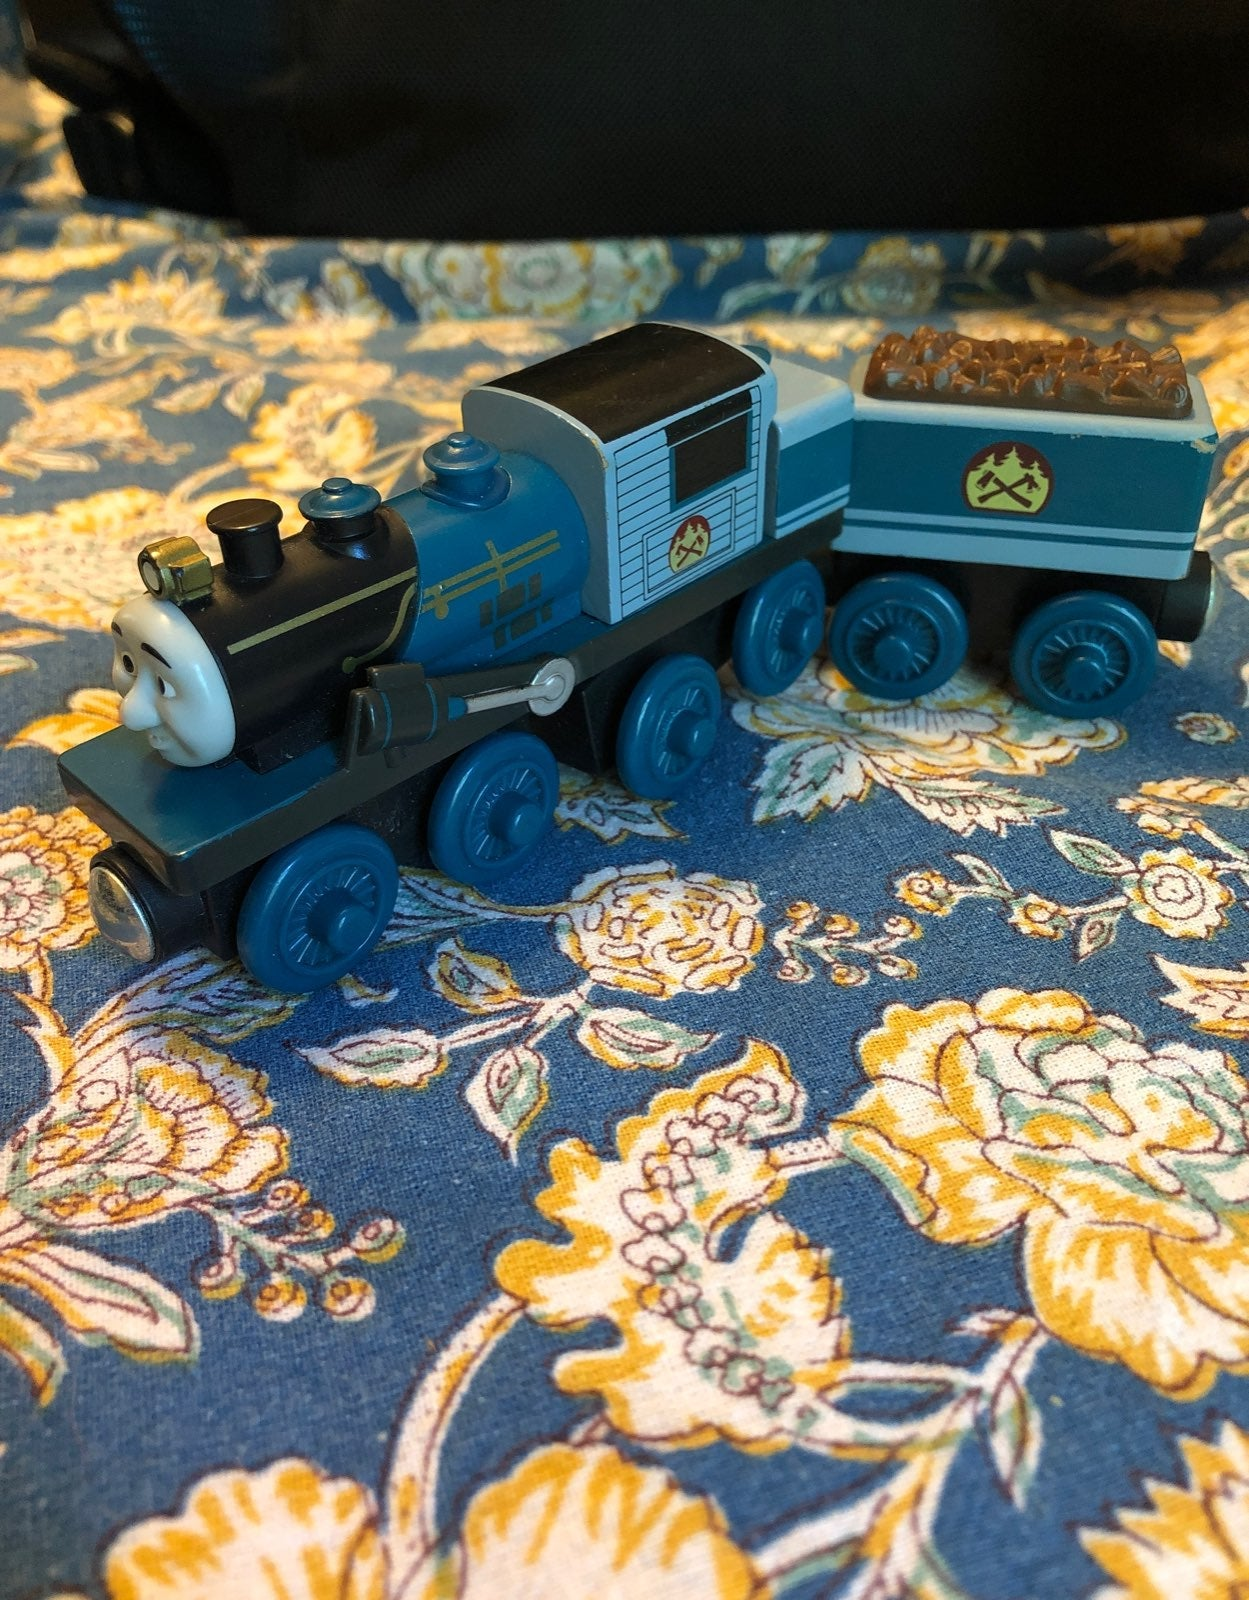 Ferdinand and his tender